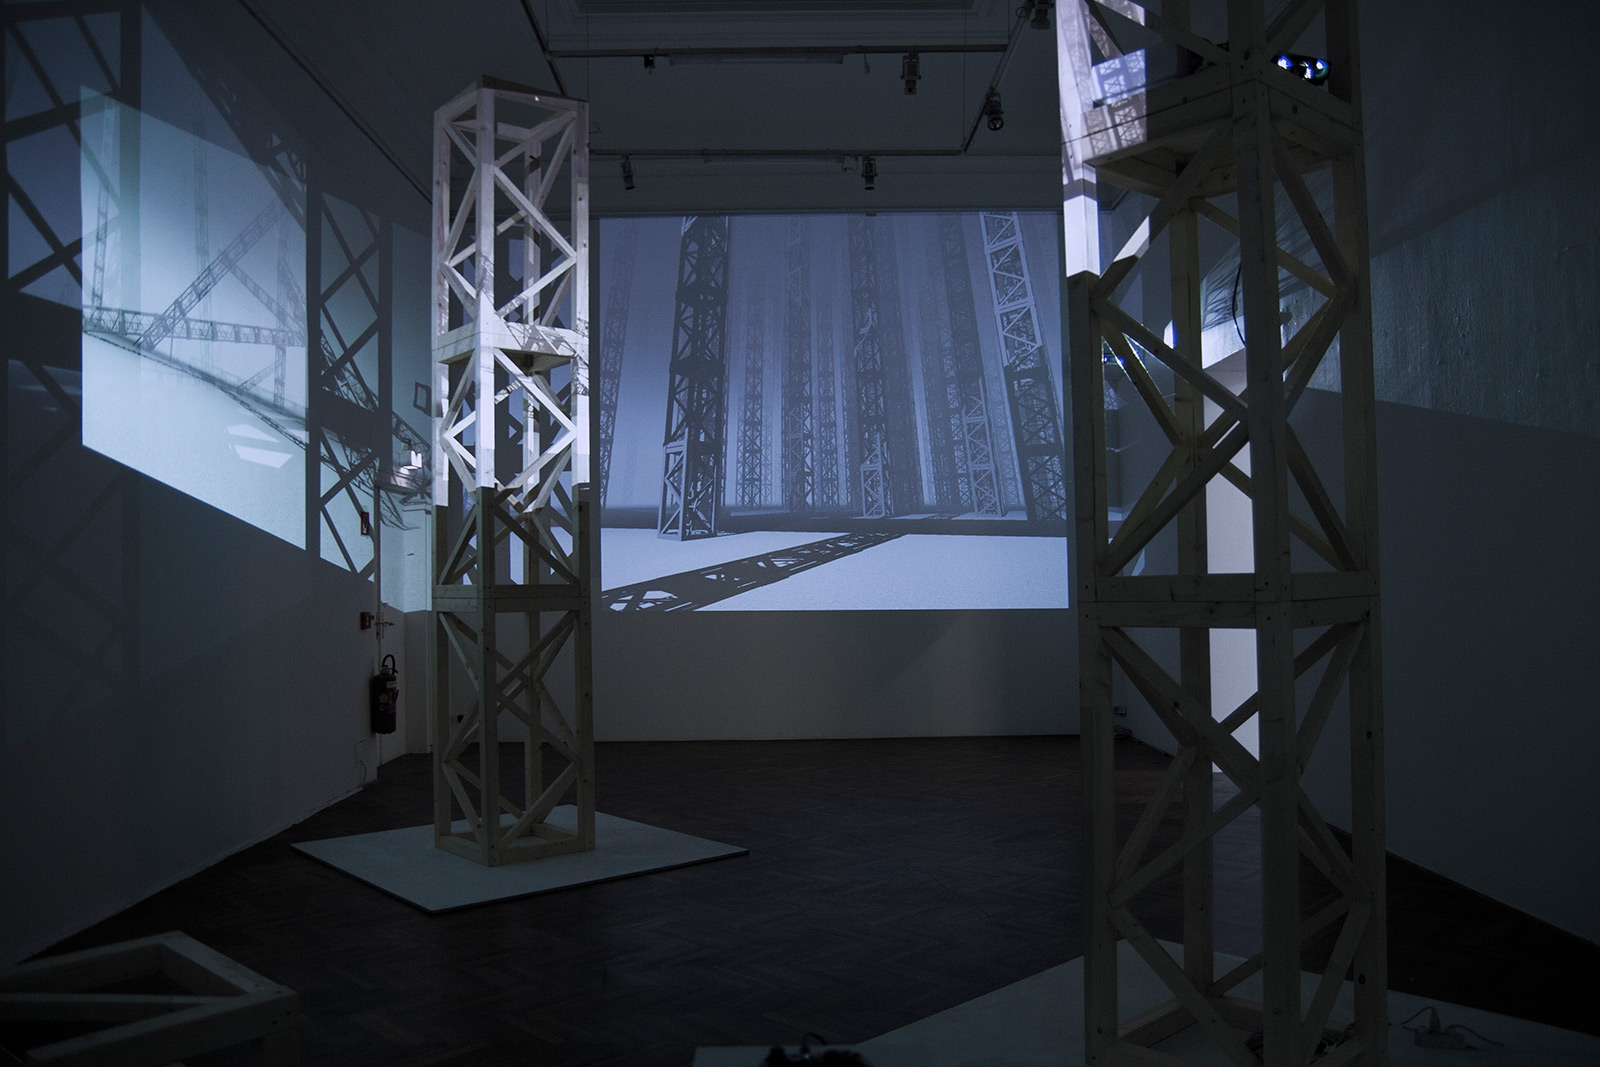 Installation View / Wood scultures and video projections